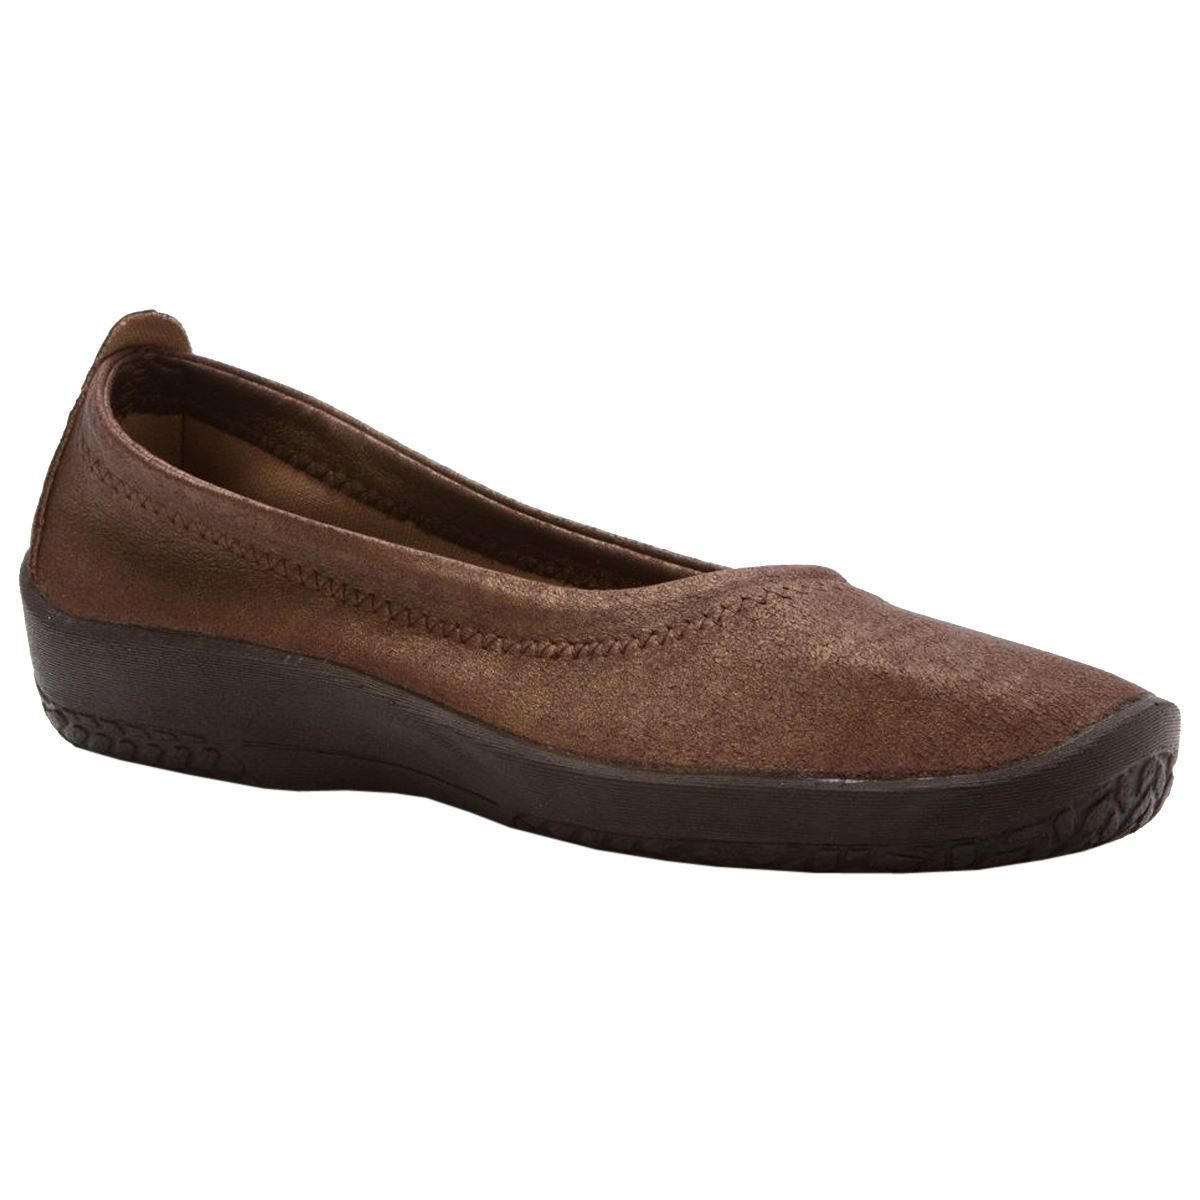 ARCOPEDICO chaussures femme L2 bronze Synthétique Chaussures